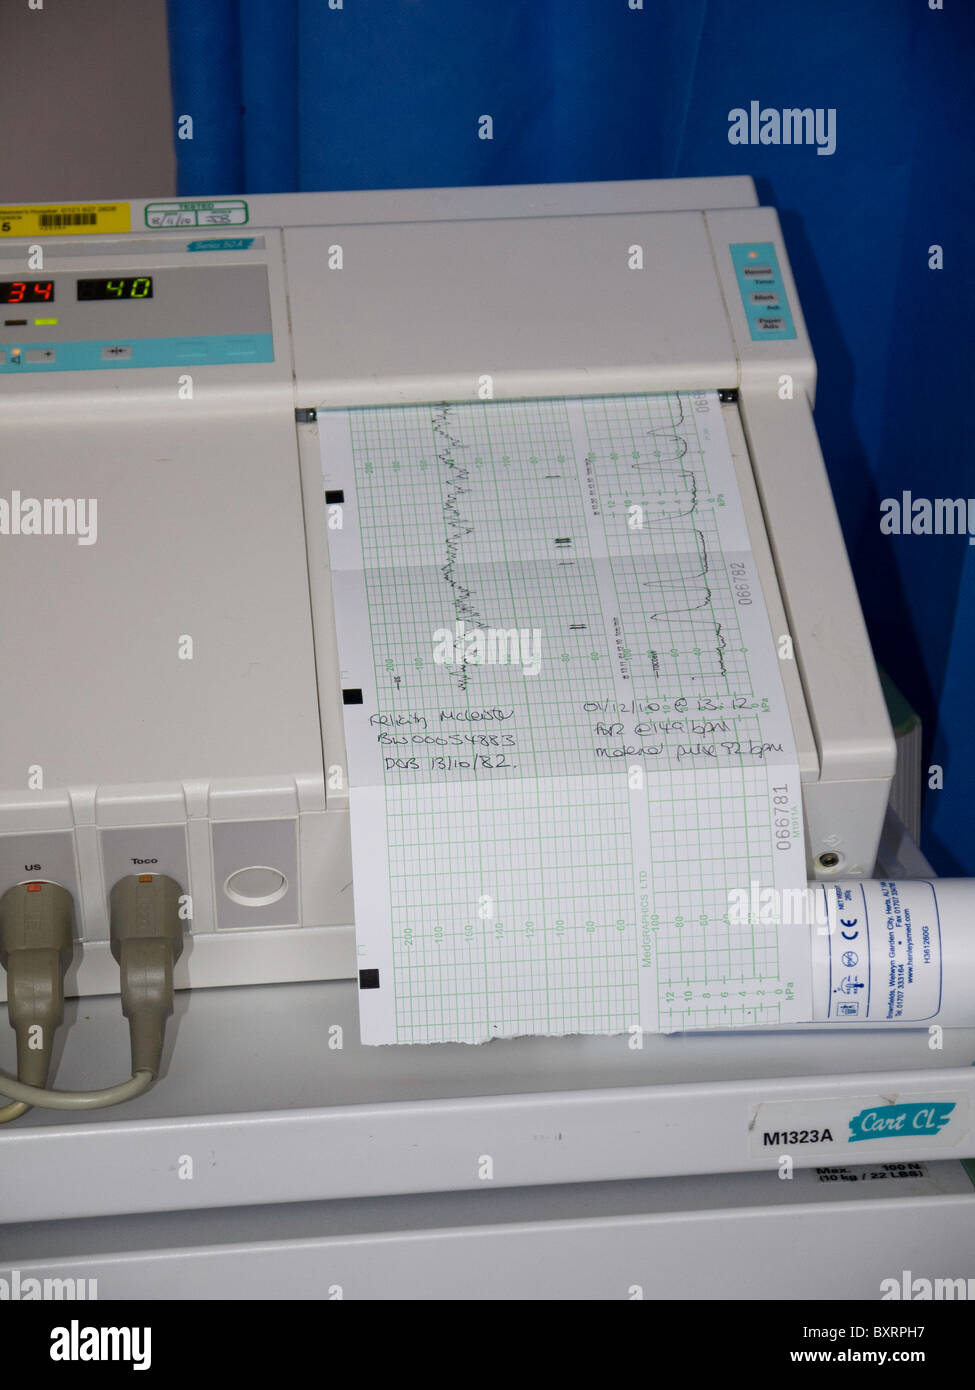 The fetal heart monitor calculates and records the fetal heart rate on a continuous strip of paper. - Stock Image